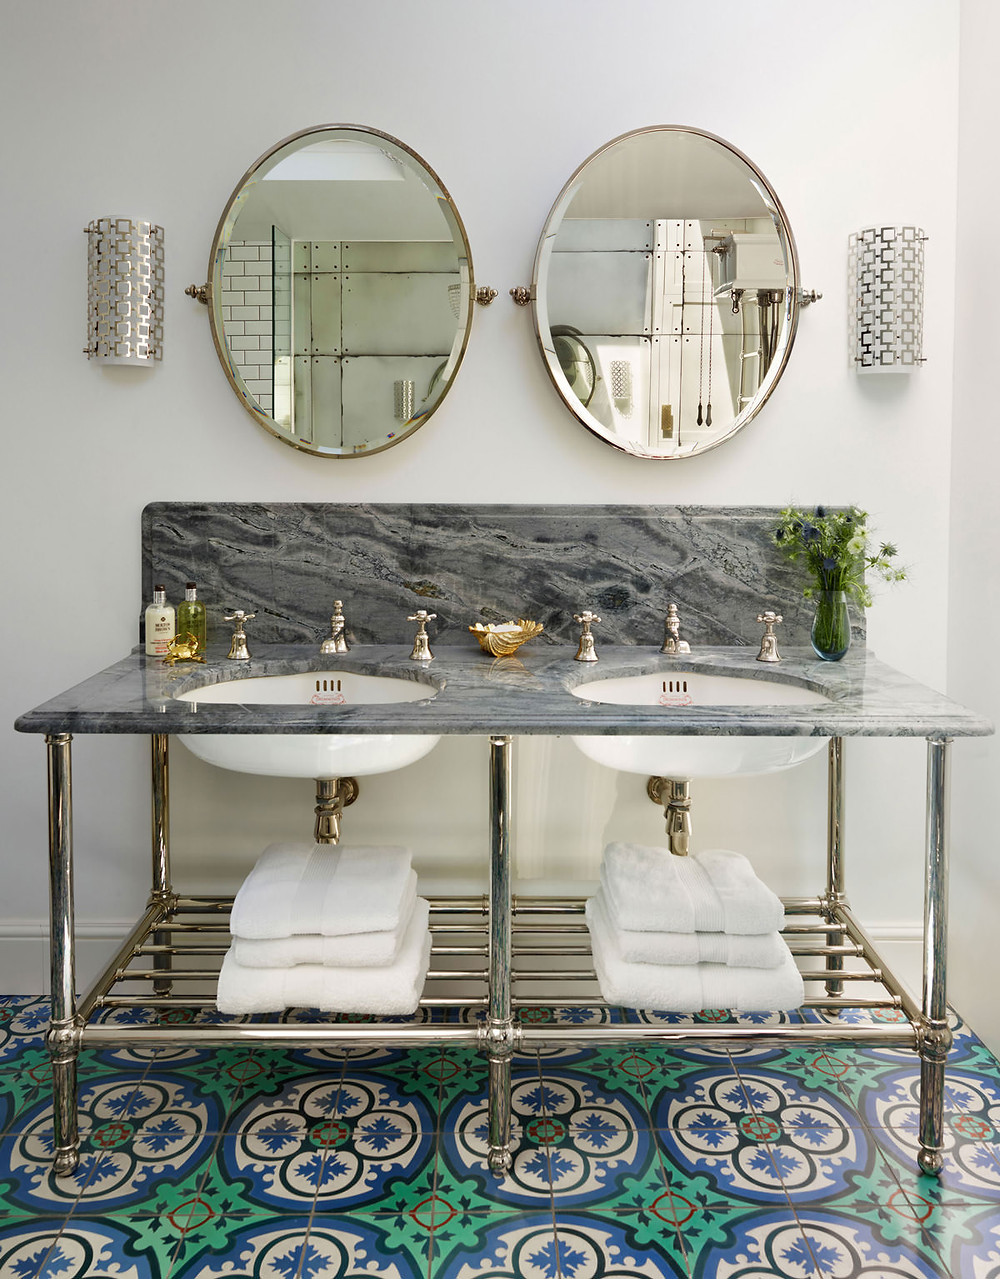 Luxury interiors: Double Crake vanity basin coordinates beautifully with the patterned tiles